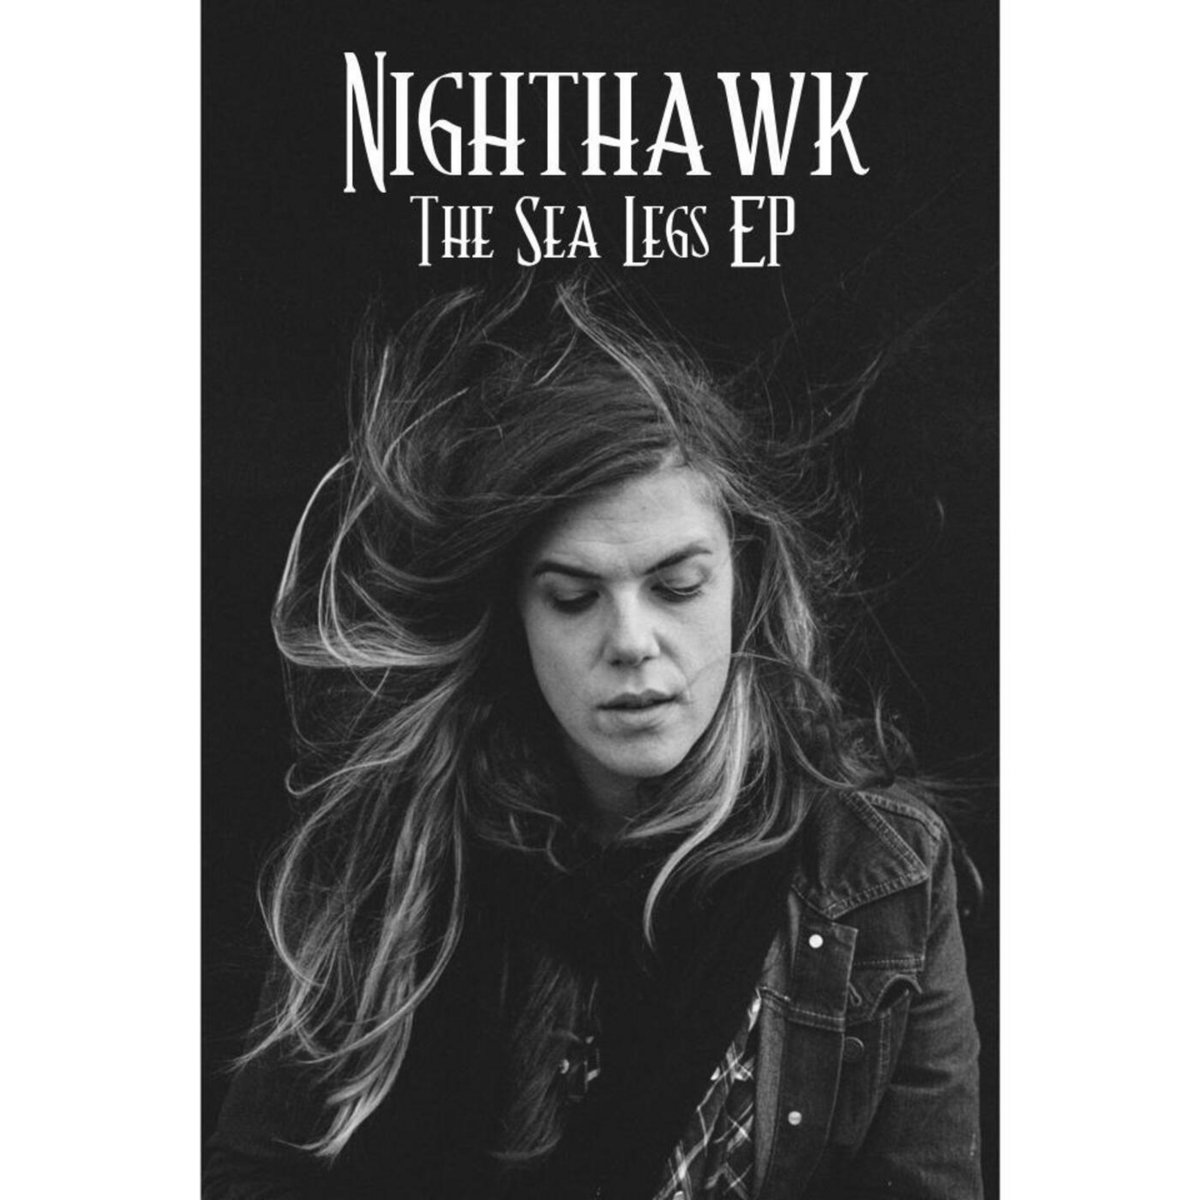 Nighthawk The Sea Legs EP